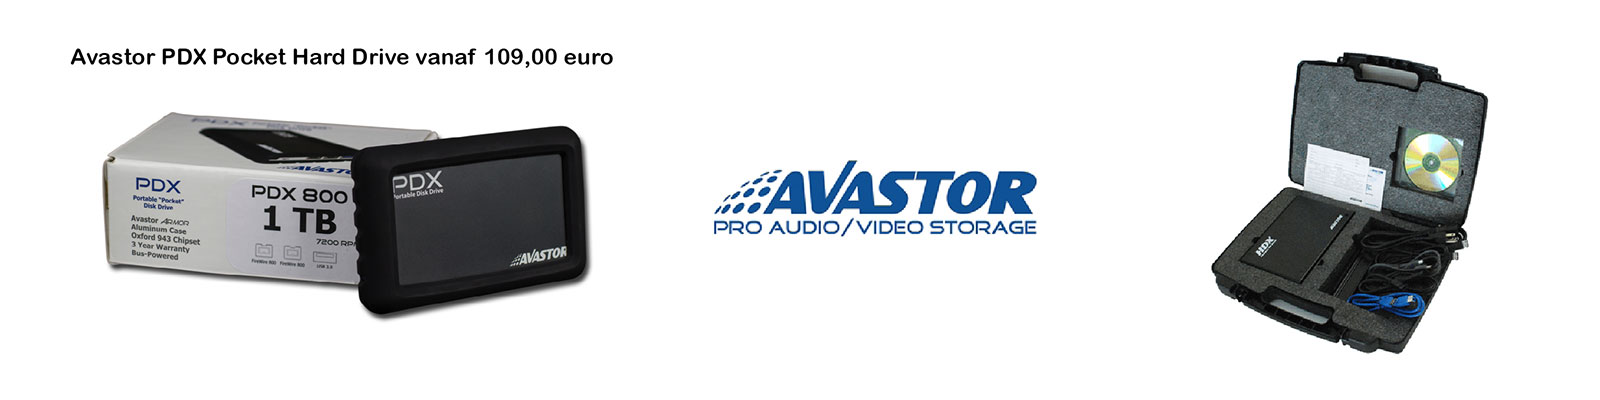 Avastor-slide3-test-4